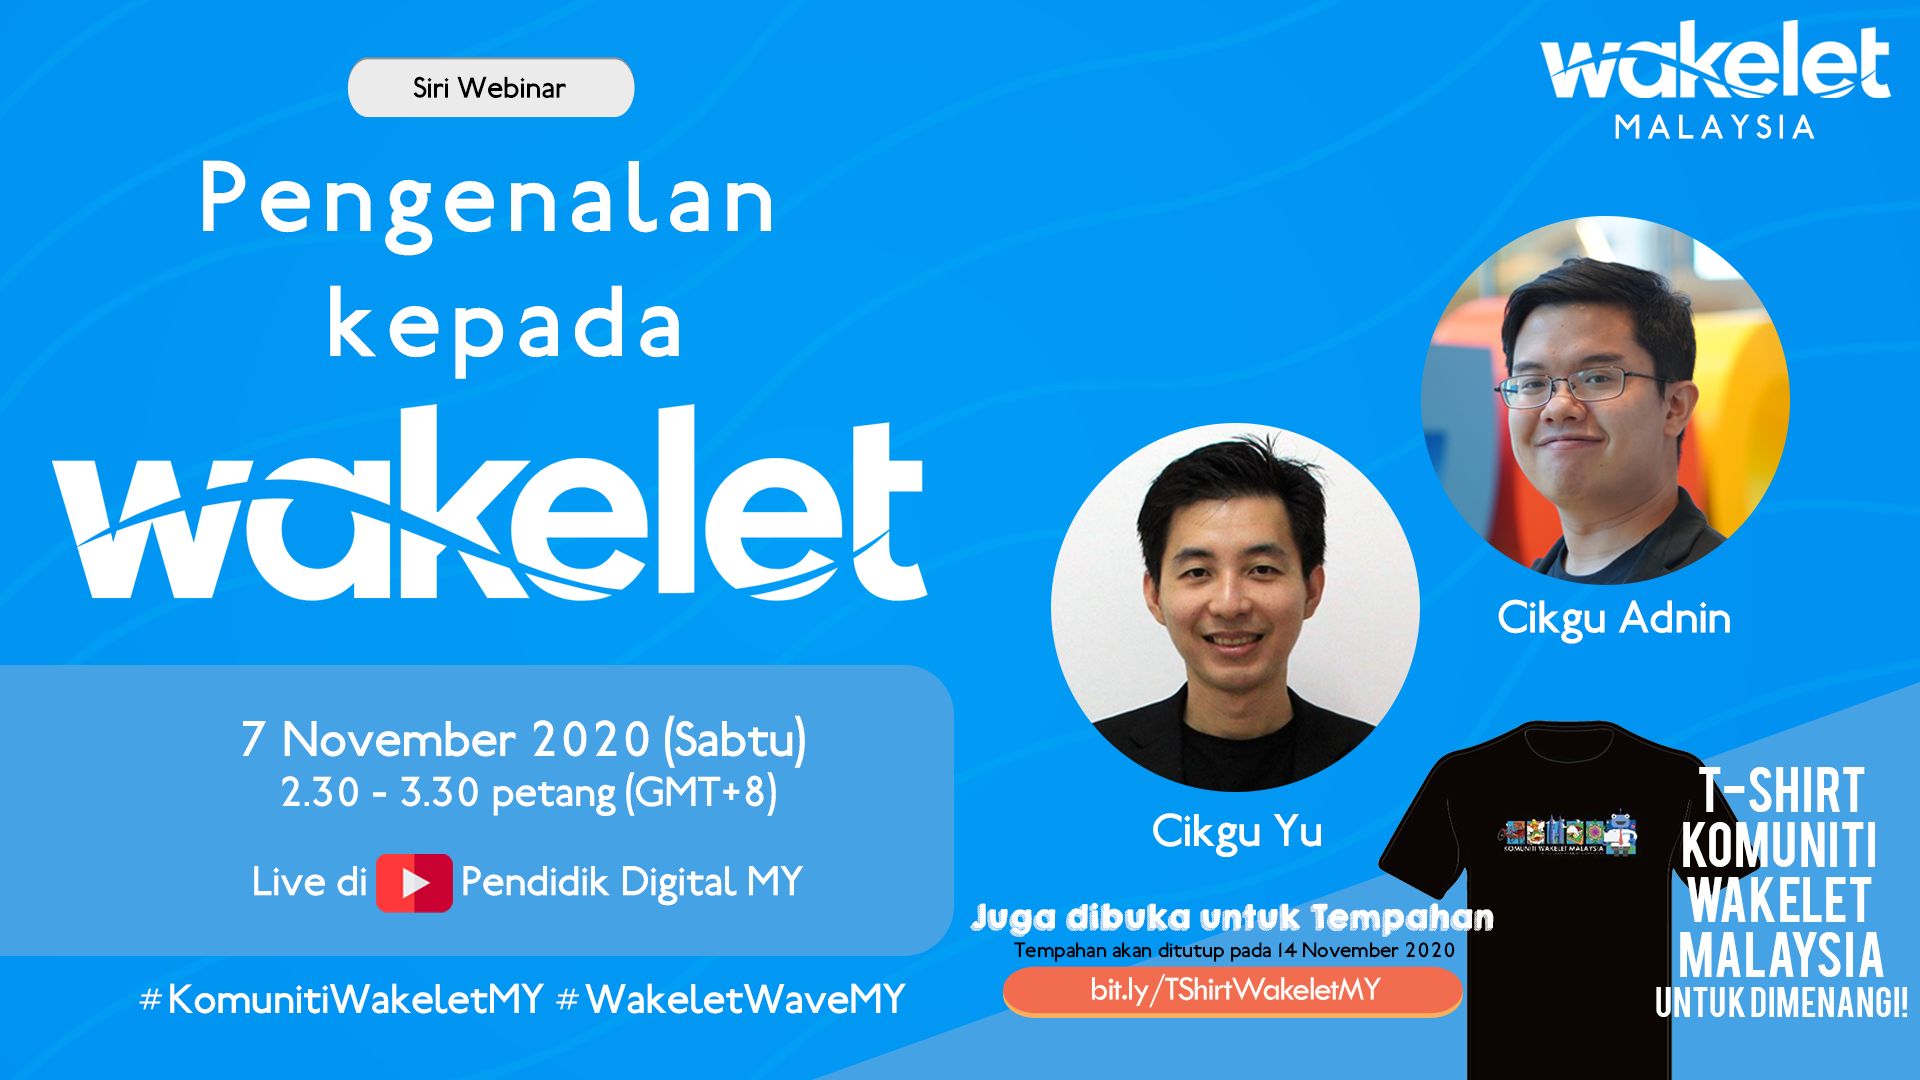 Spice Up Wakelet Training Sessions with Kahoot! - Wakelet Malaysia's First Webinar